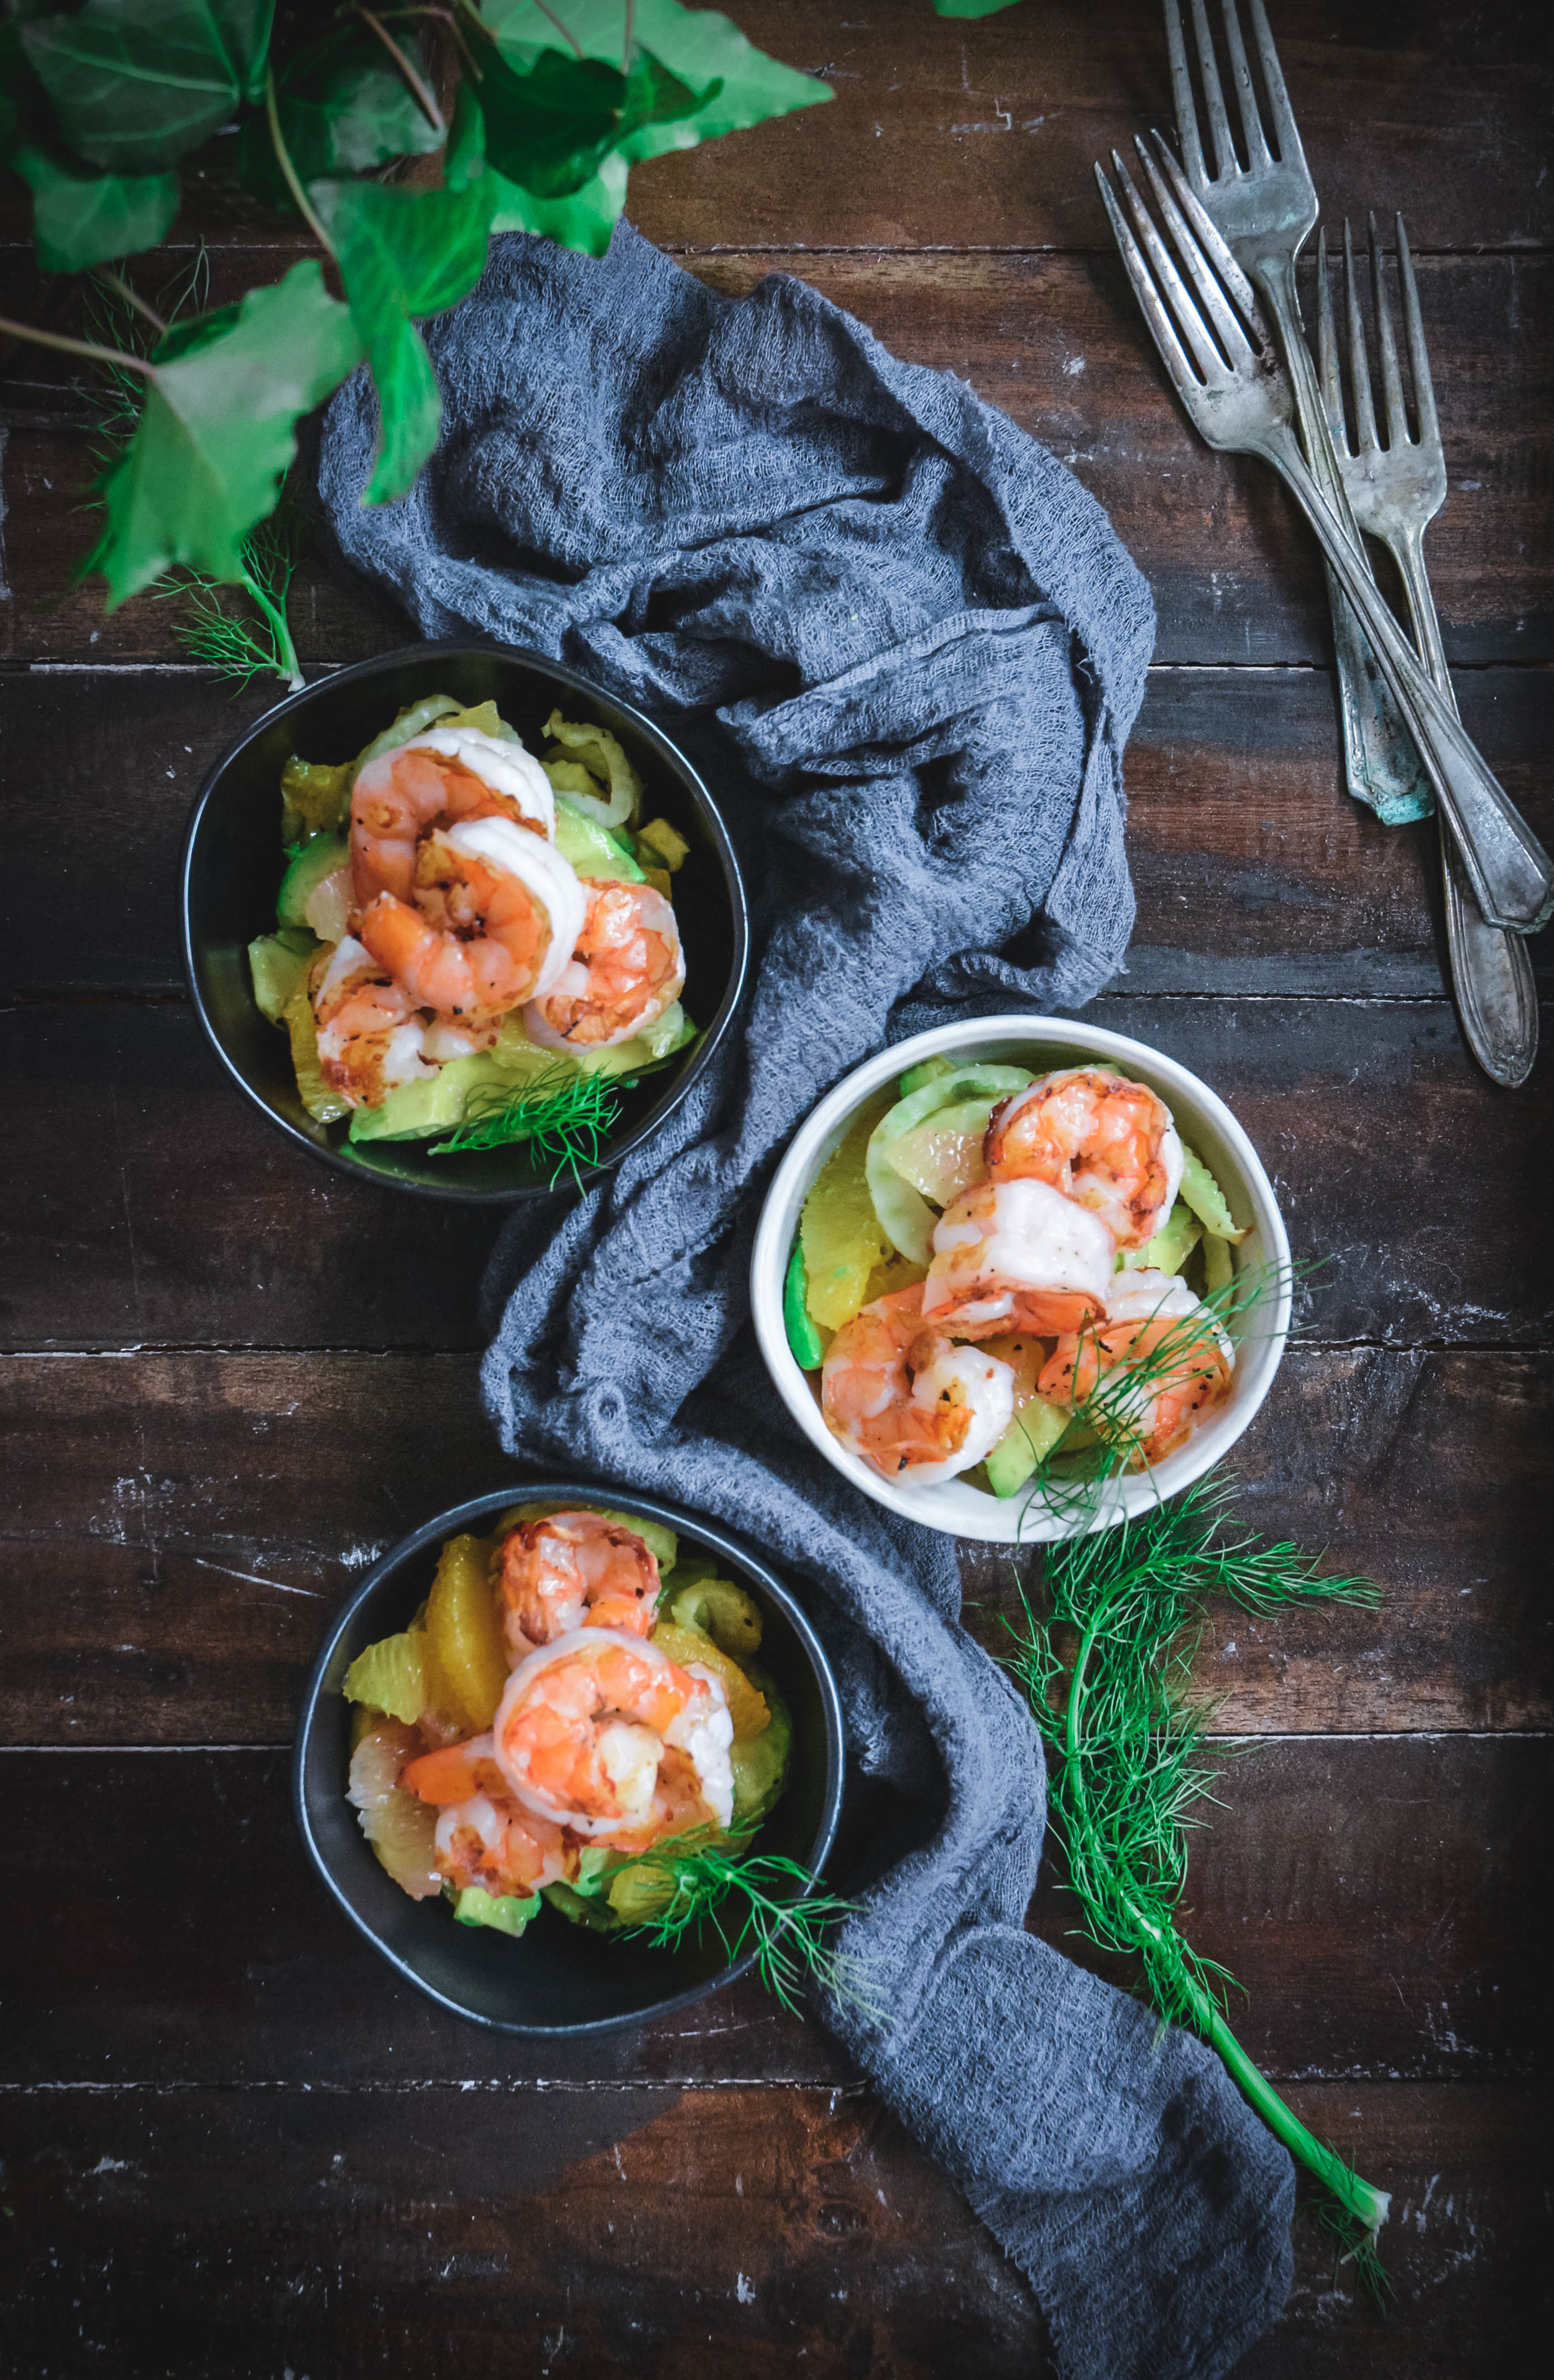 Shrimp Said with Fennel, Citrus and Avocado in 3 bowls with greens, forks and napkin